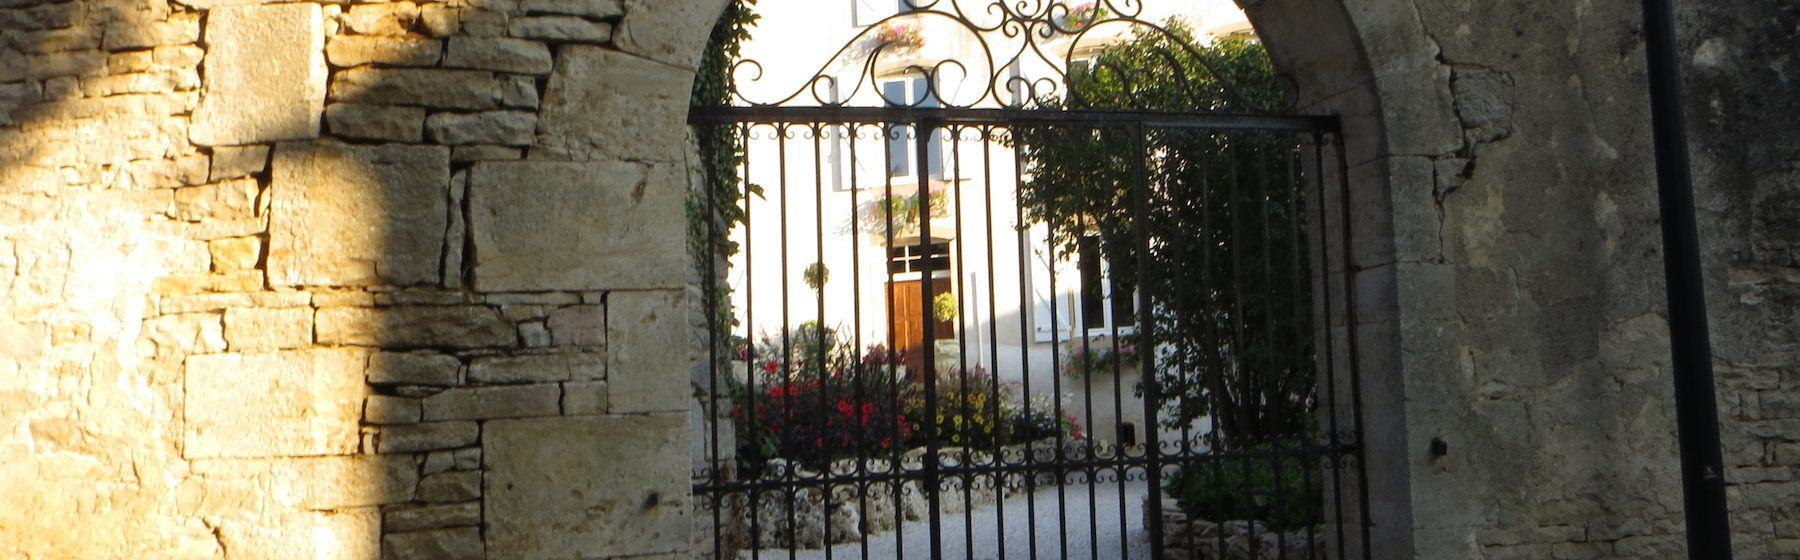 Chateau Bed and Breakfast Le Bailli